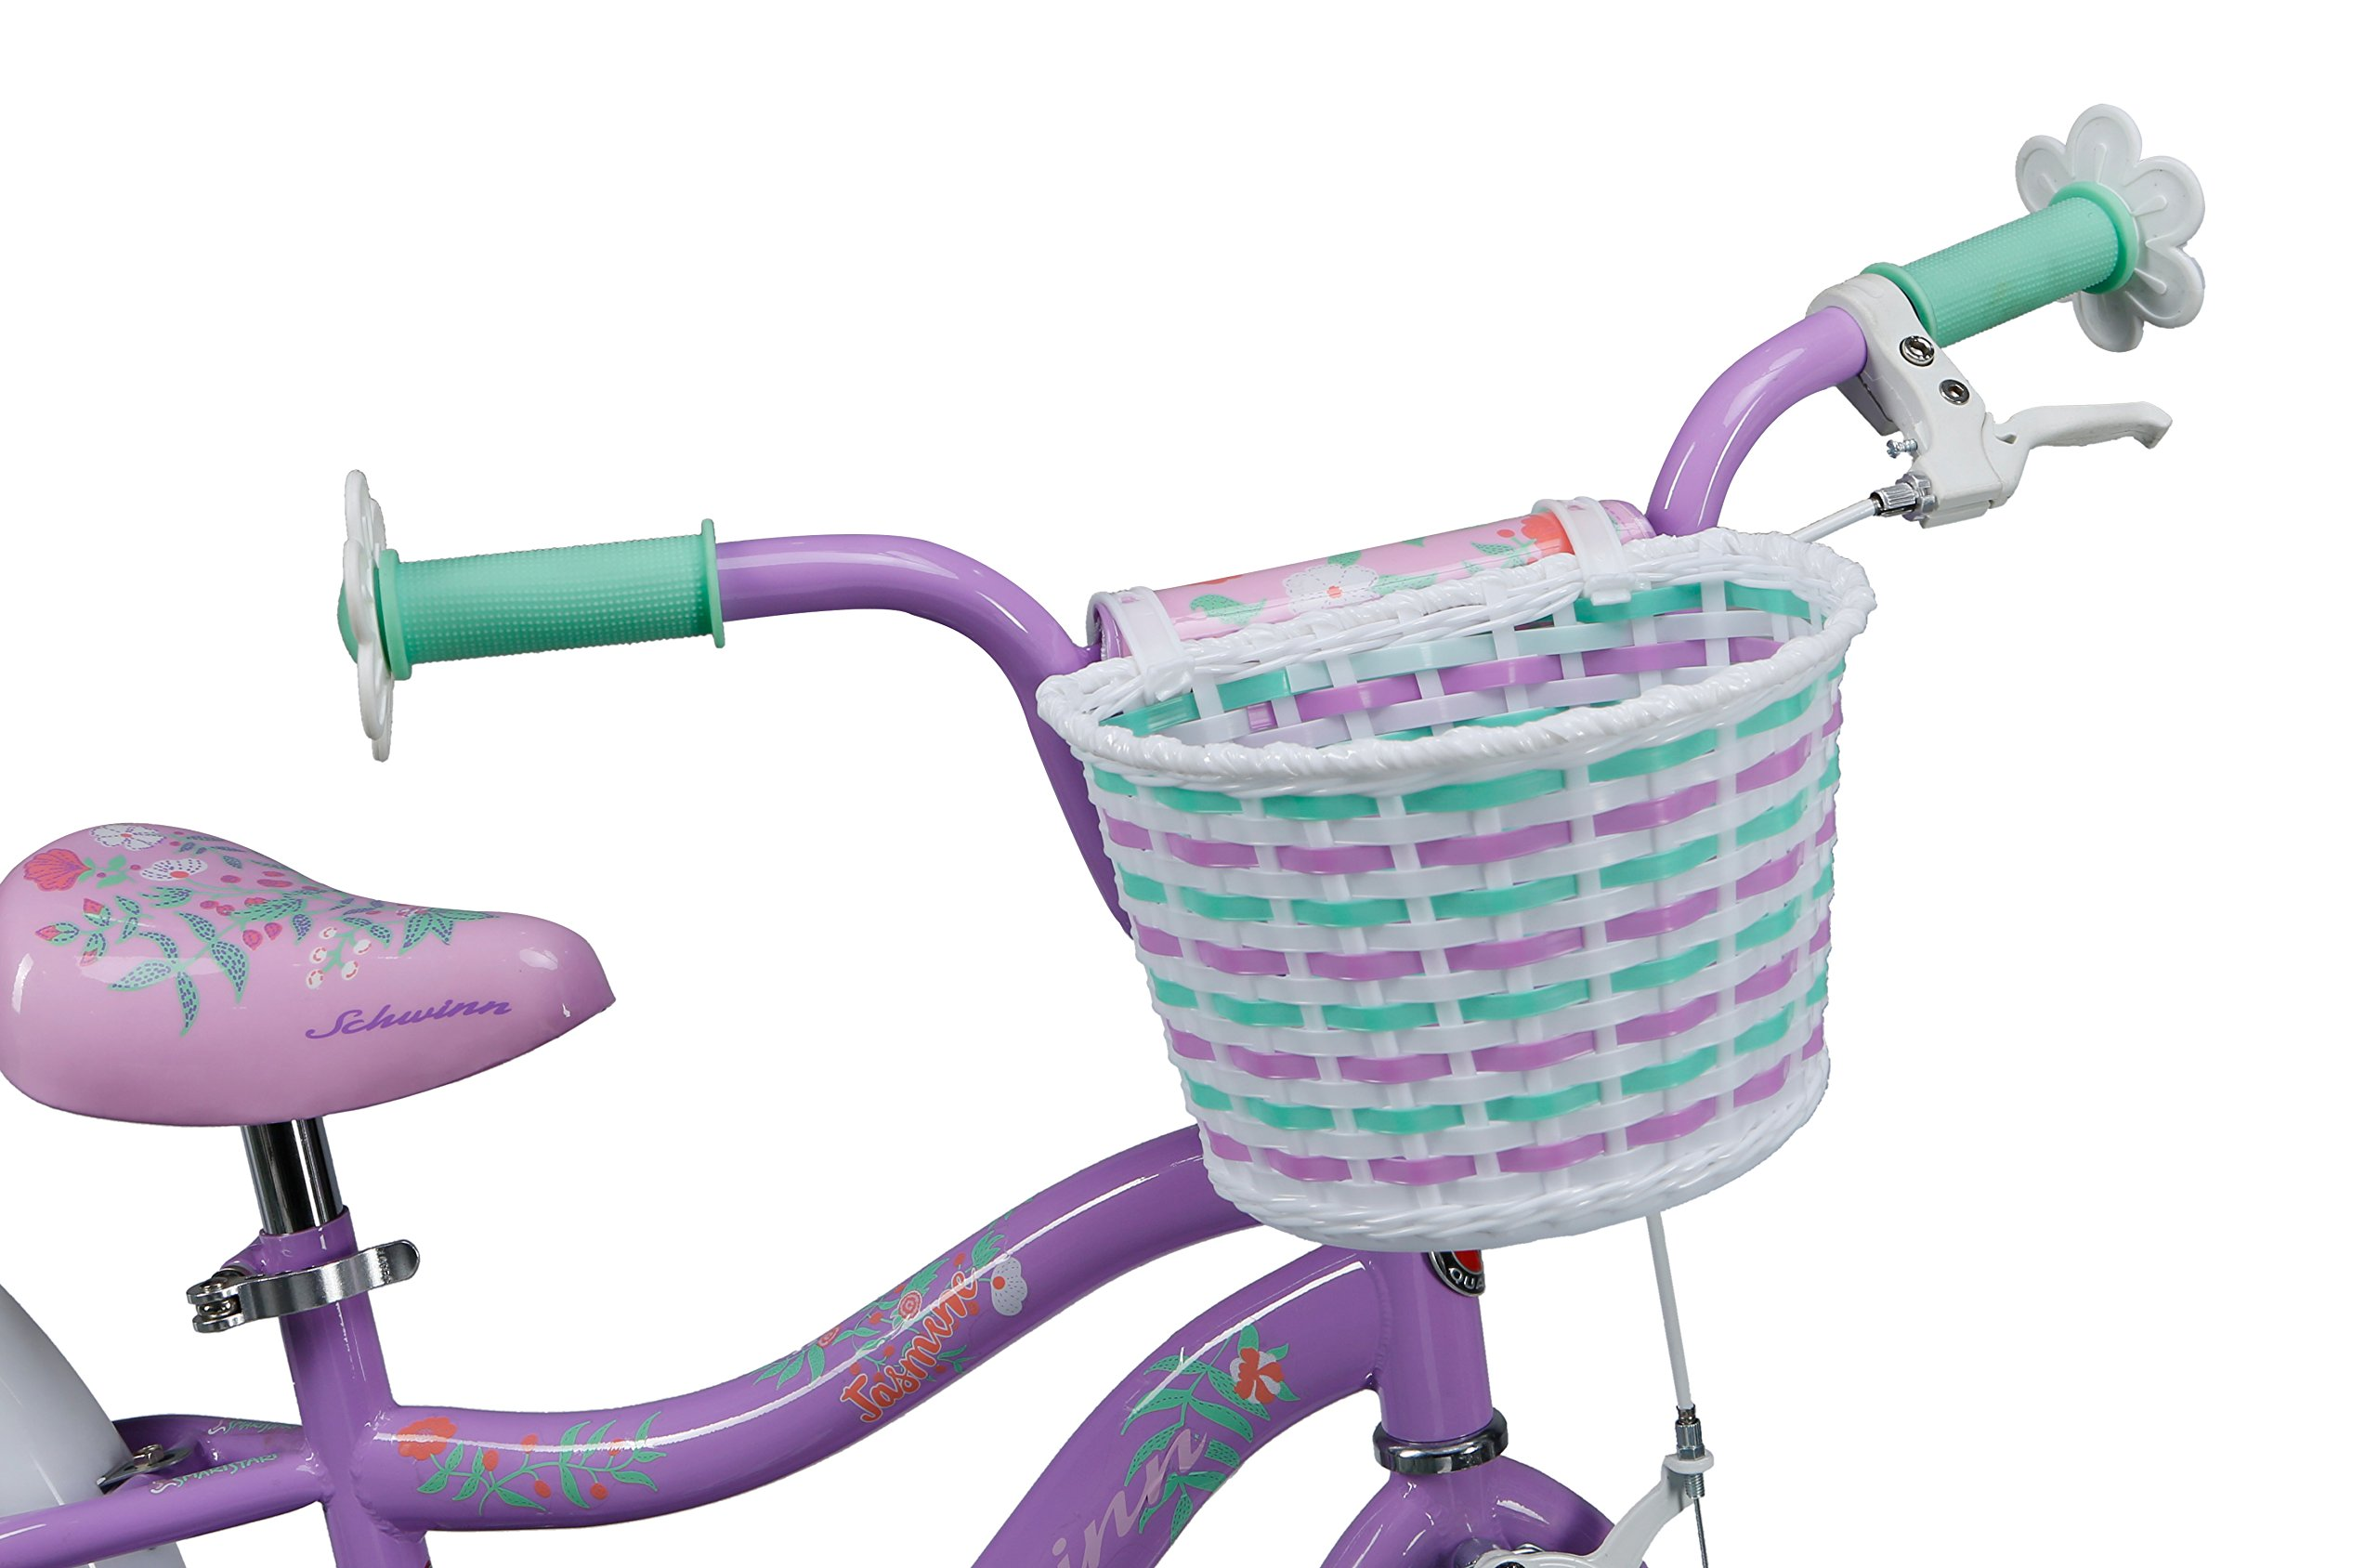 Schwinn Girl's Jasmine Bicycle, 16'', Purple by Schwinn (Image #5)